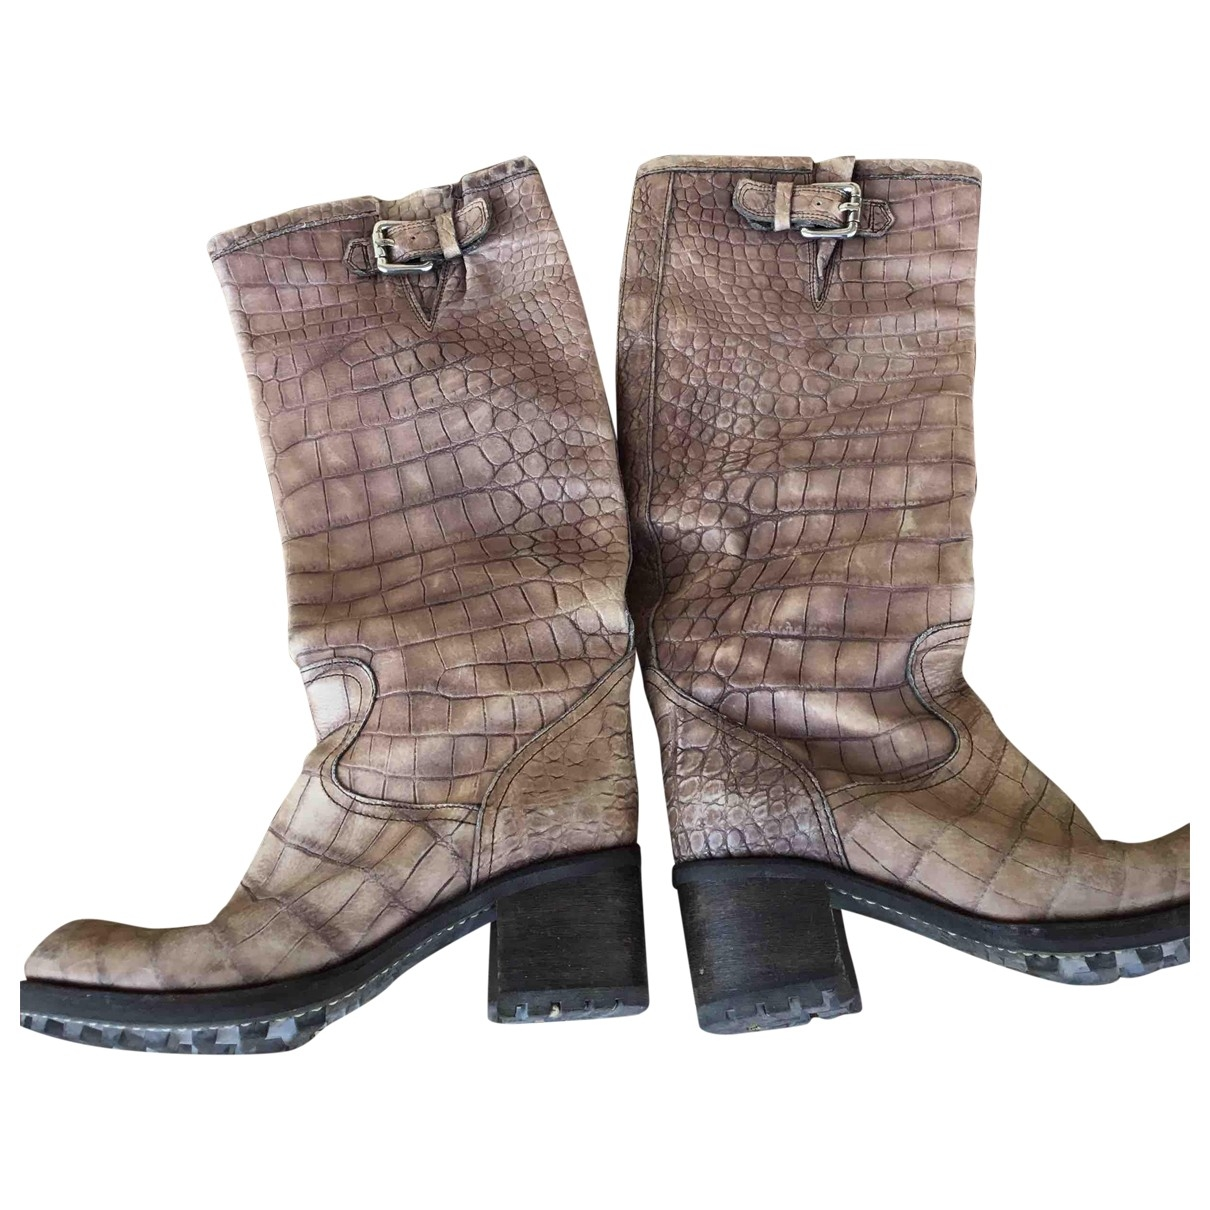 Free Lance Geronimo Leather Boots for Women 38 EU